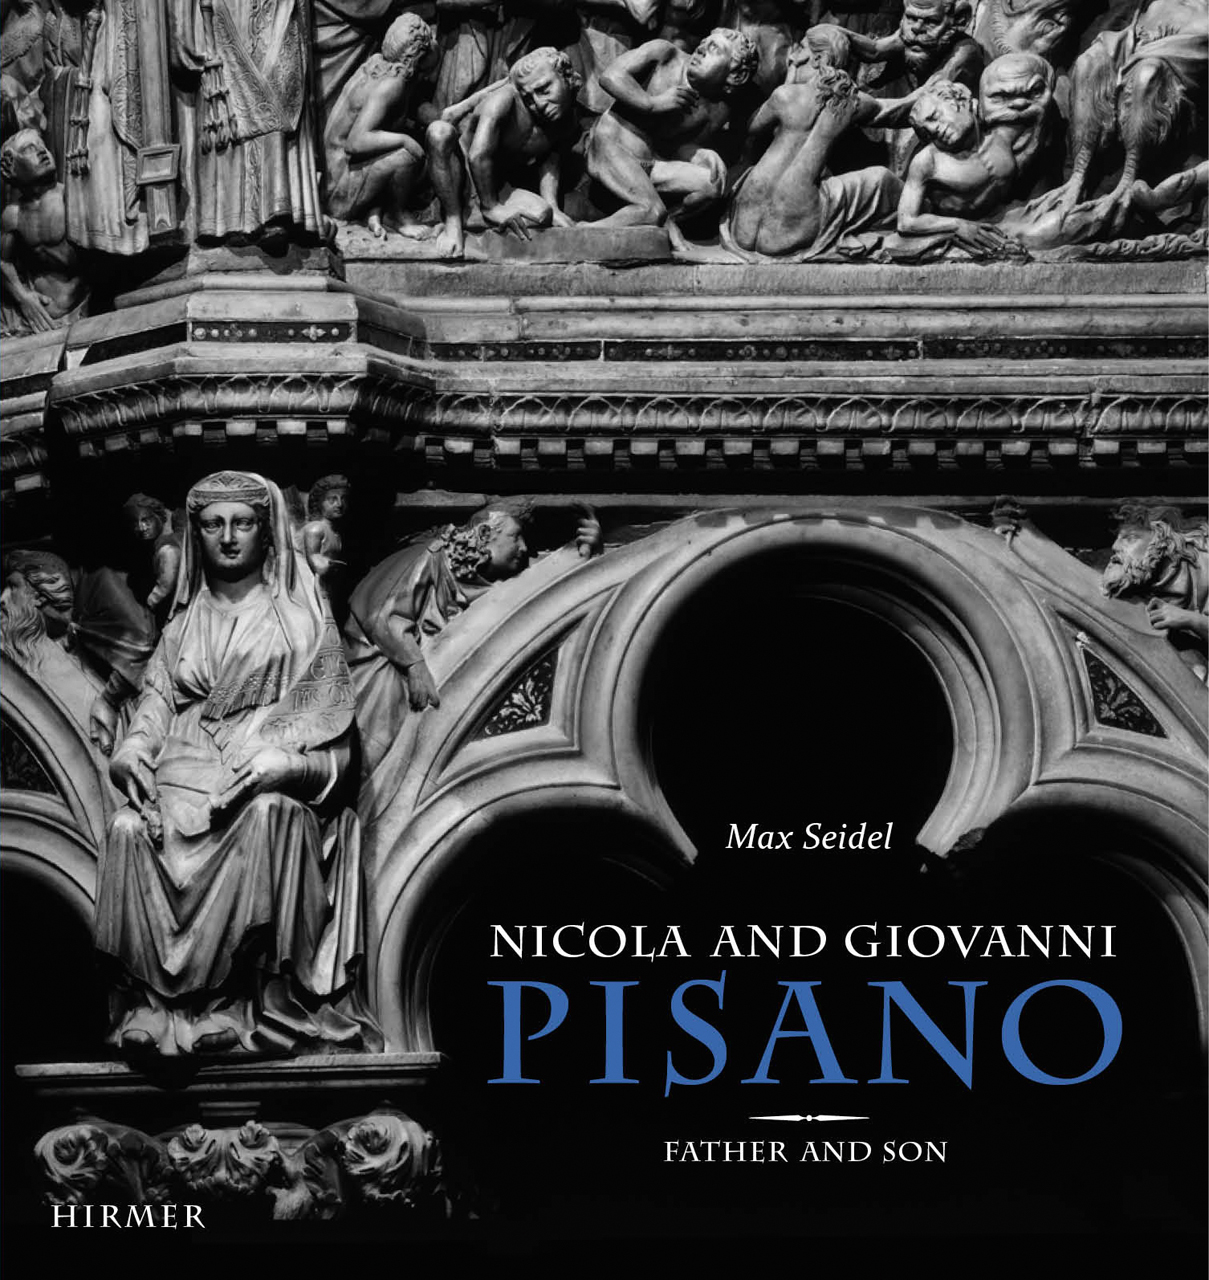 Nicola and Giovanni Pisano